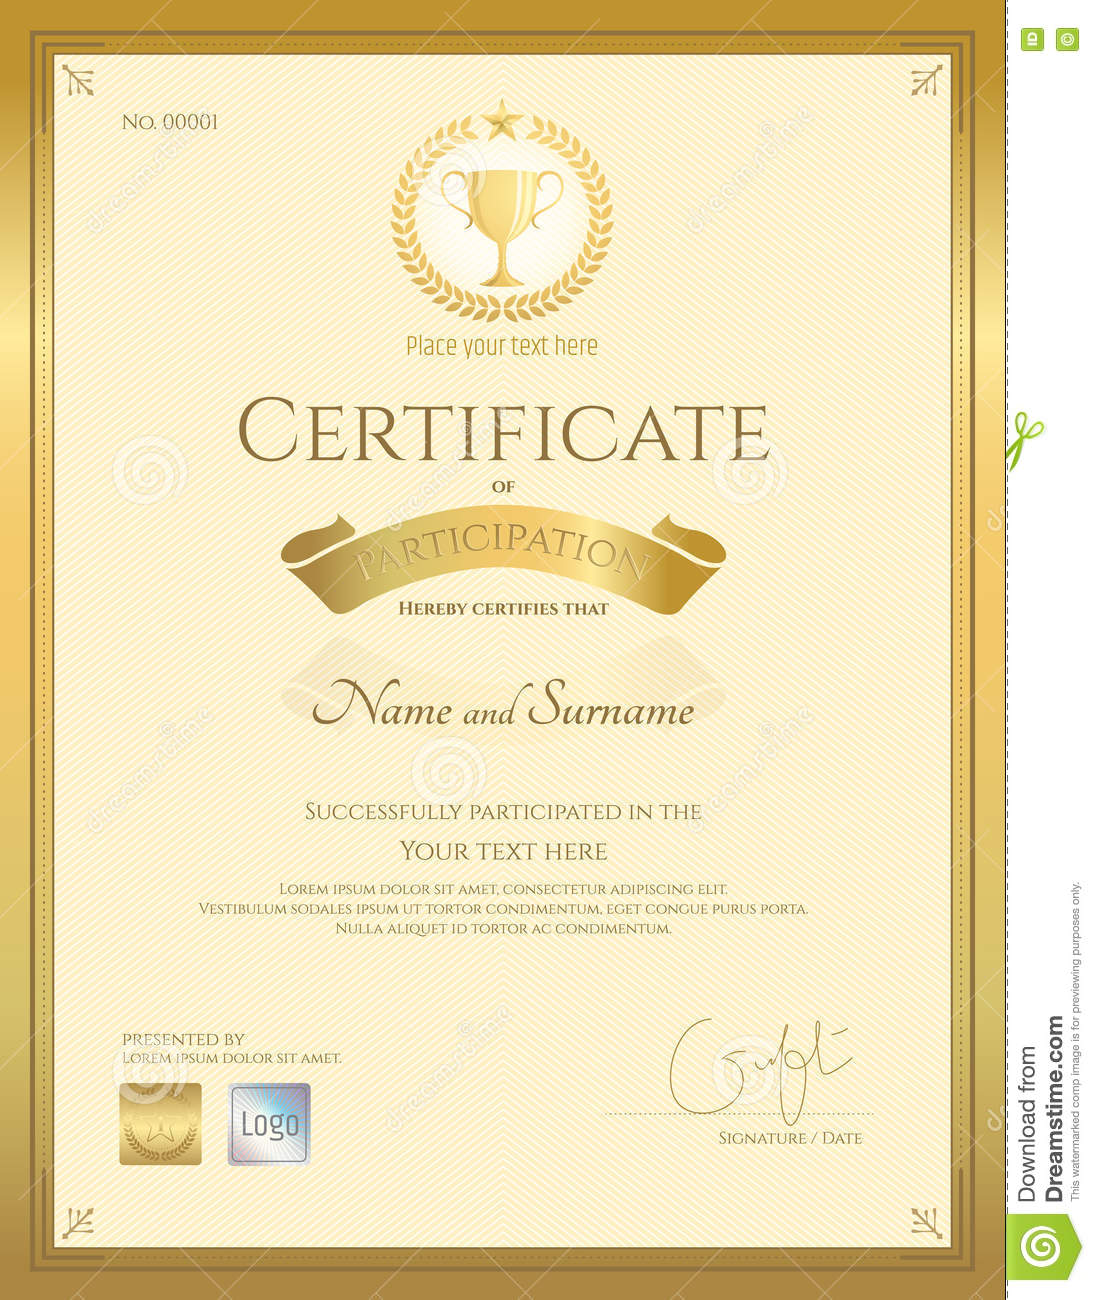 Certificate Of Participation Template In Gold Color Vector – Certificate of Participation Template